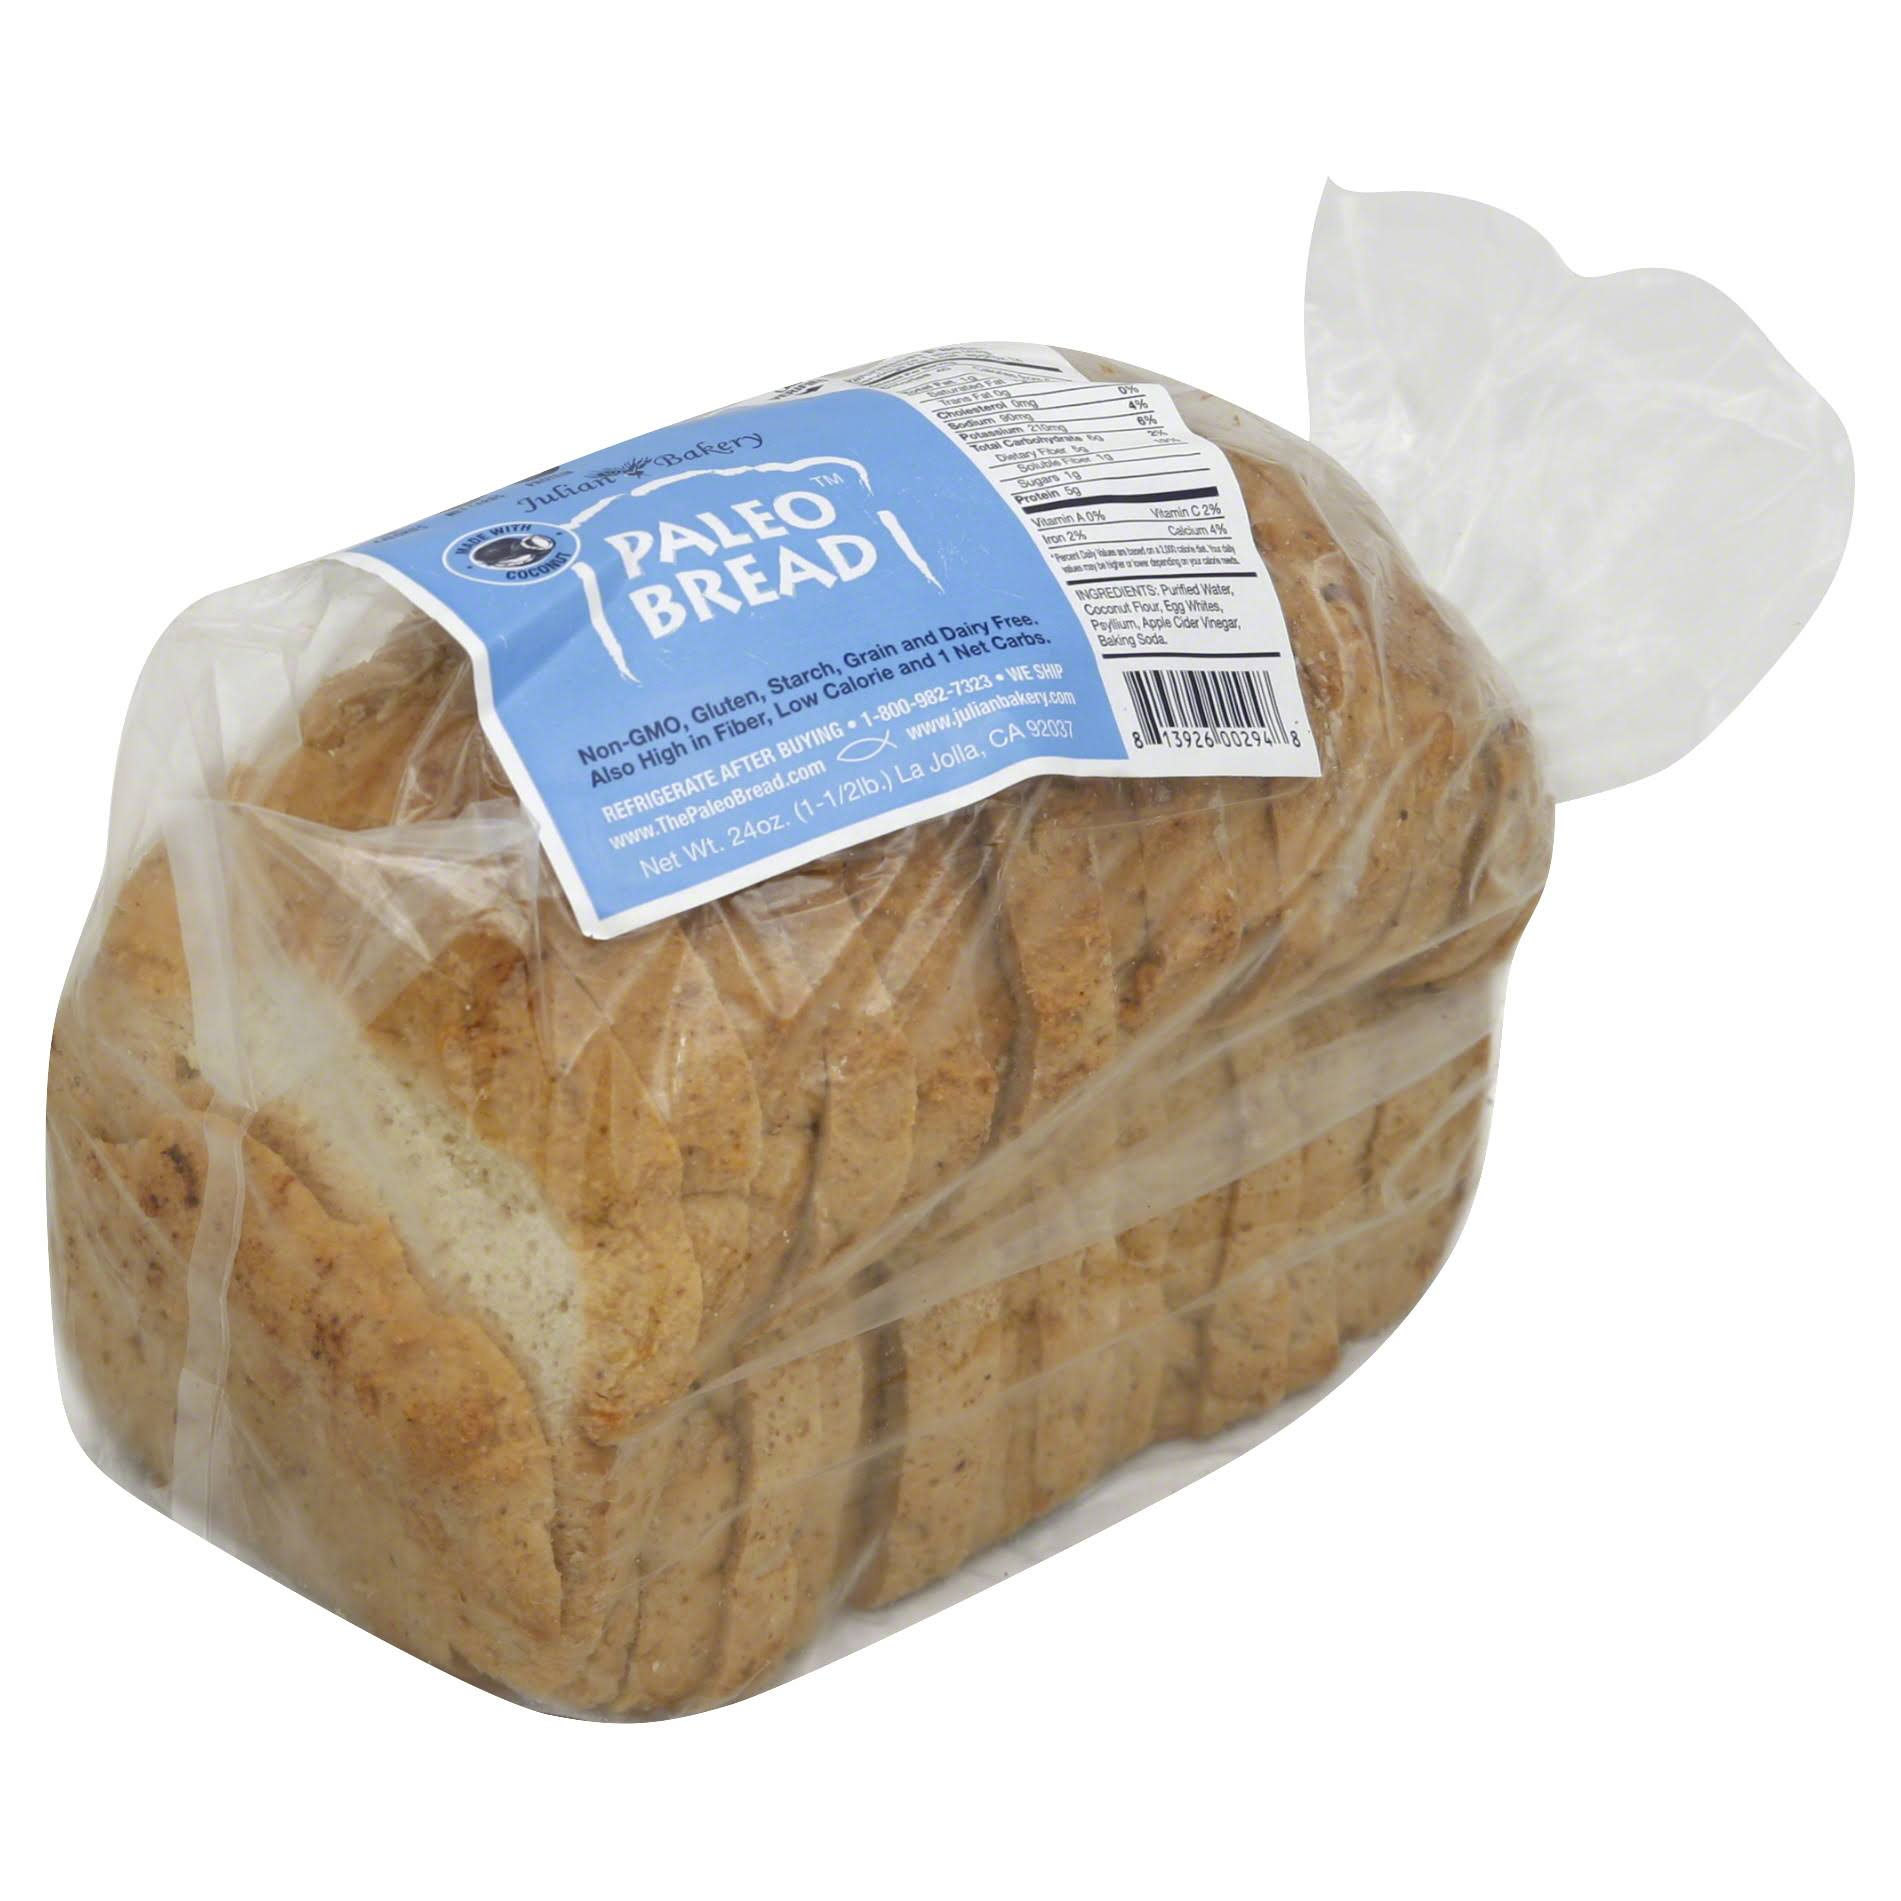 Julian Bakery Paleo Bread, Made with Coconut - 24 oz